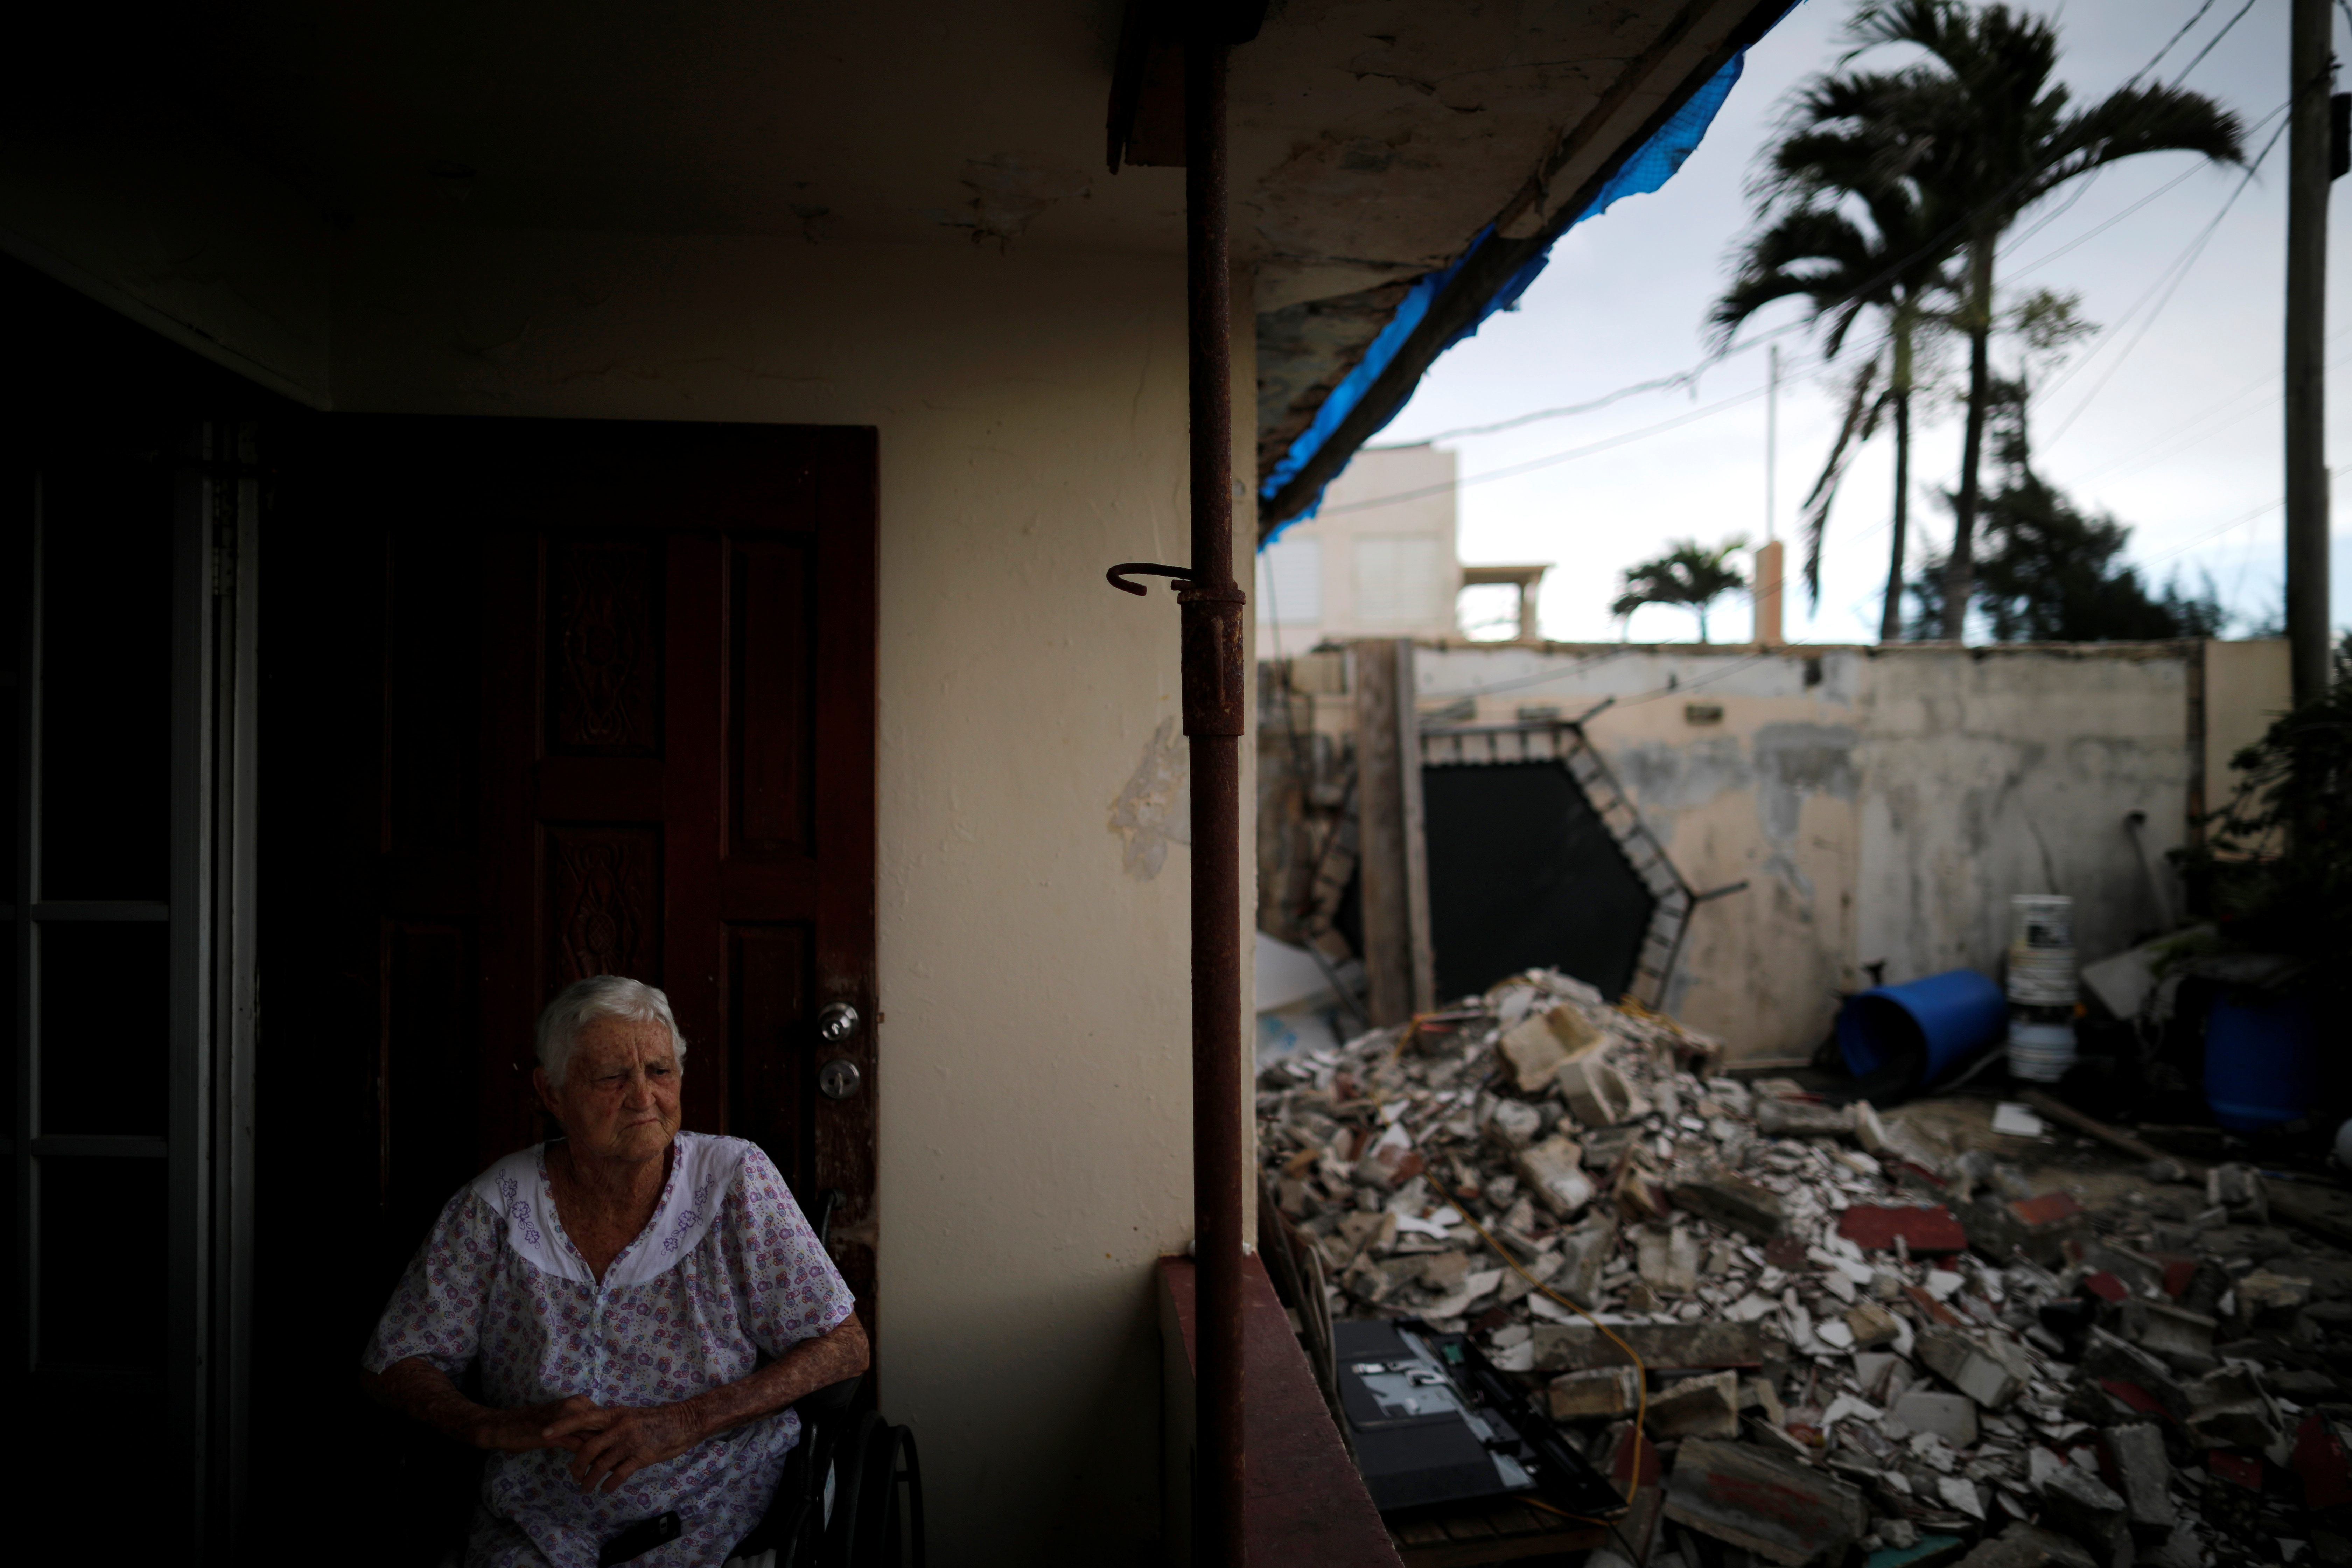 Lucila Cabrera, 86, sits at the porch of her damaged house by Hurricane Maria, a year after the storm devastated Puerto Rico, near Barceloneta, Puerto Rico, September 18, 2018. Picture taken September 18, 2018. REUTERS/Carlos Barria